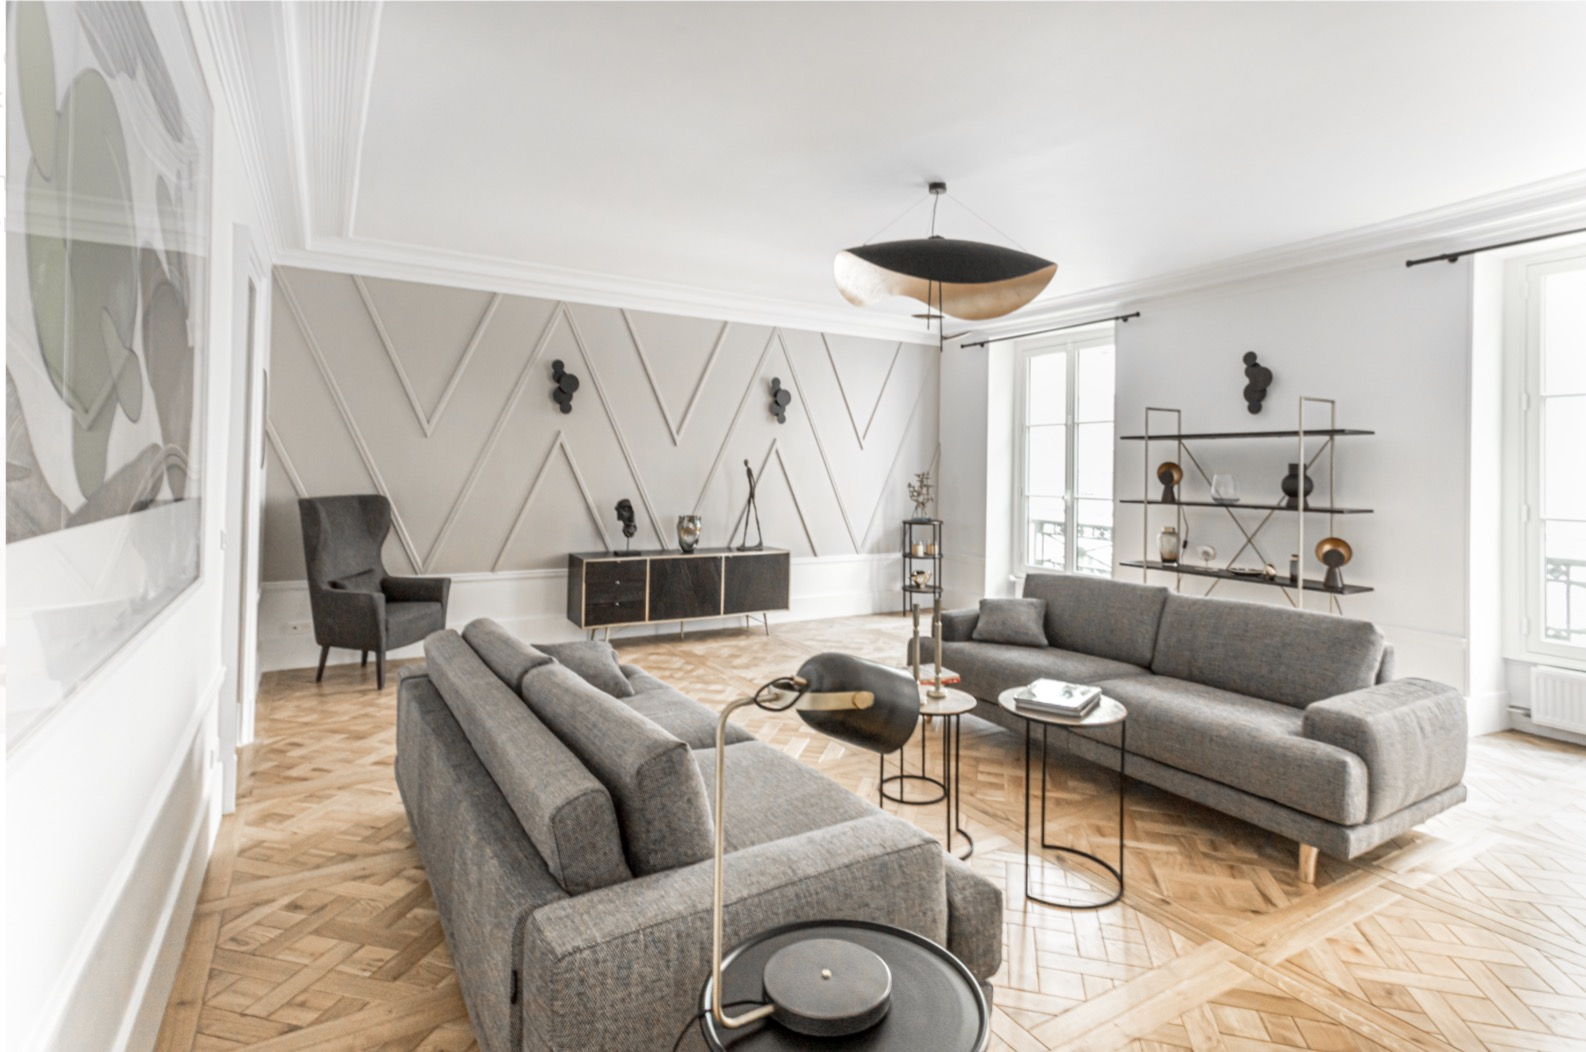 MODERN CHIC IN THE HEART OF THE MARAIS